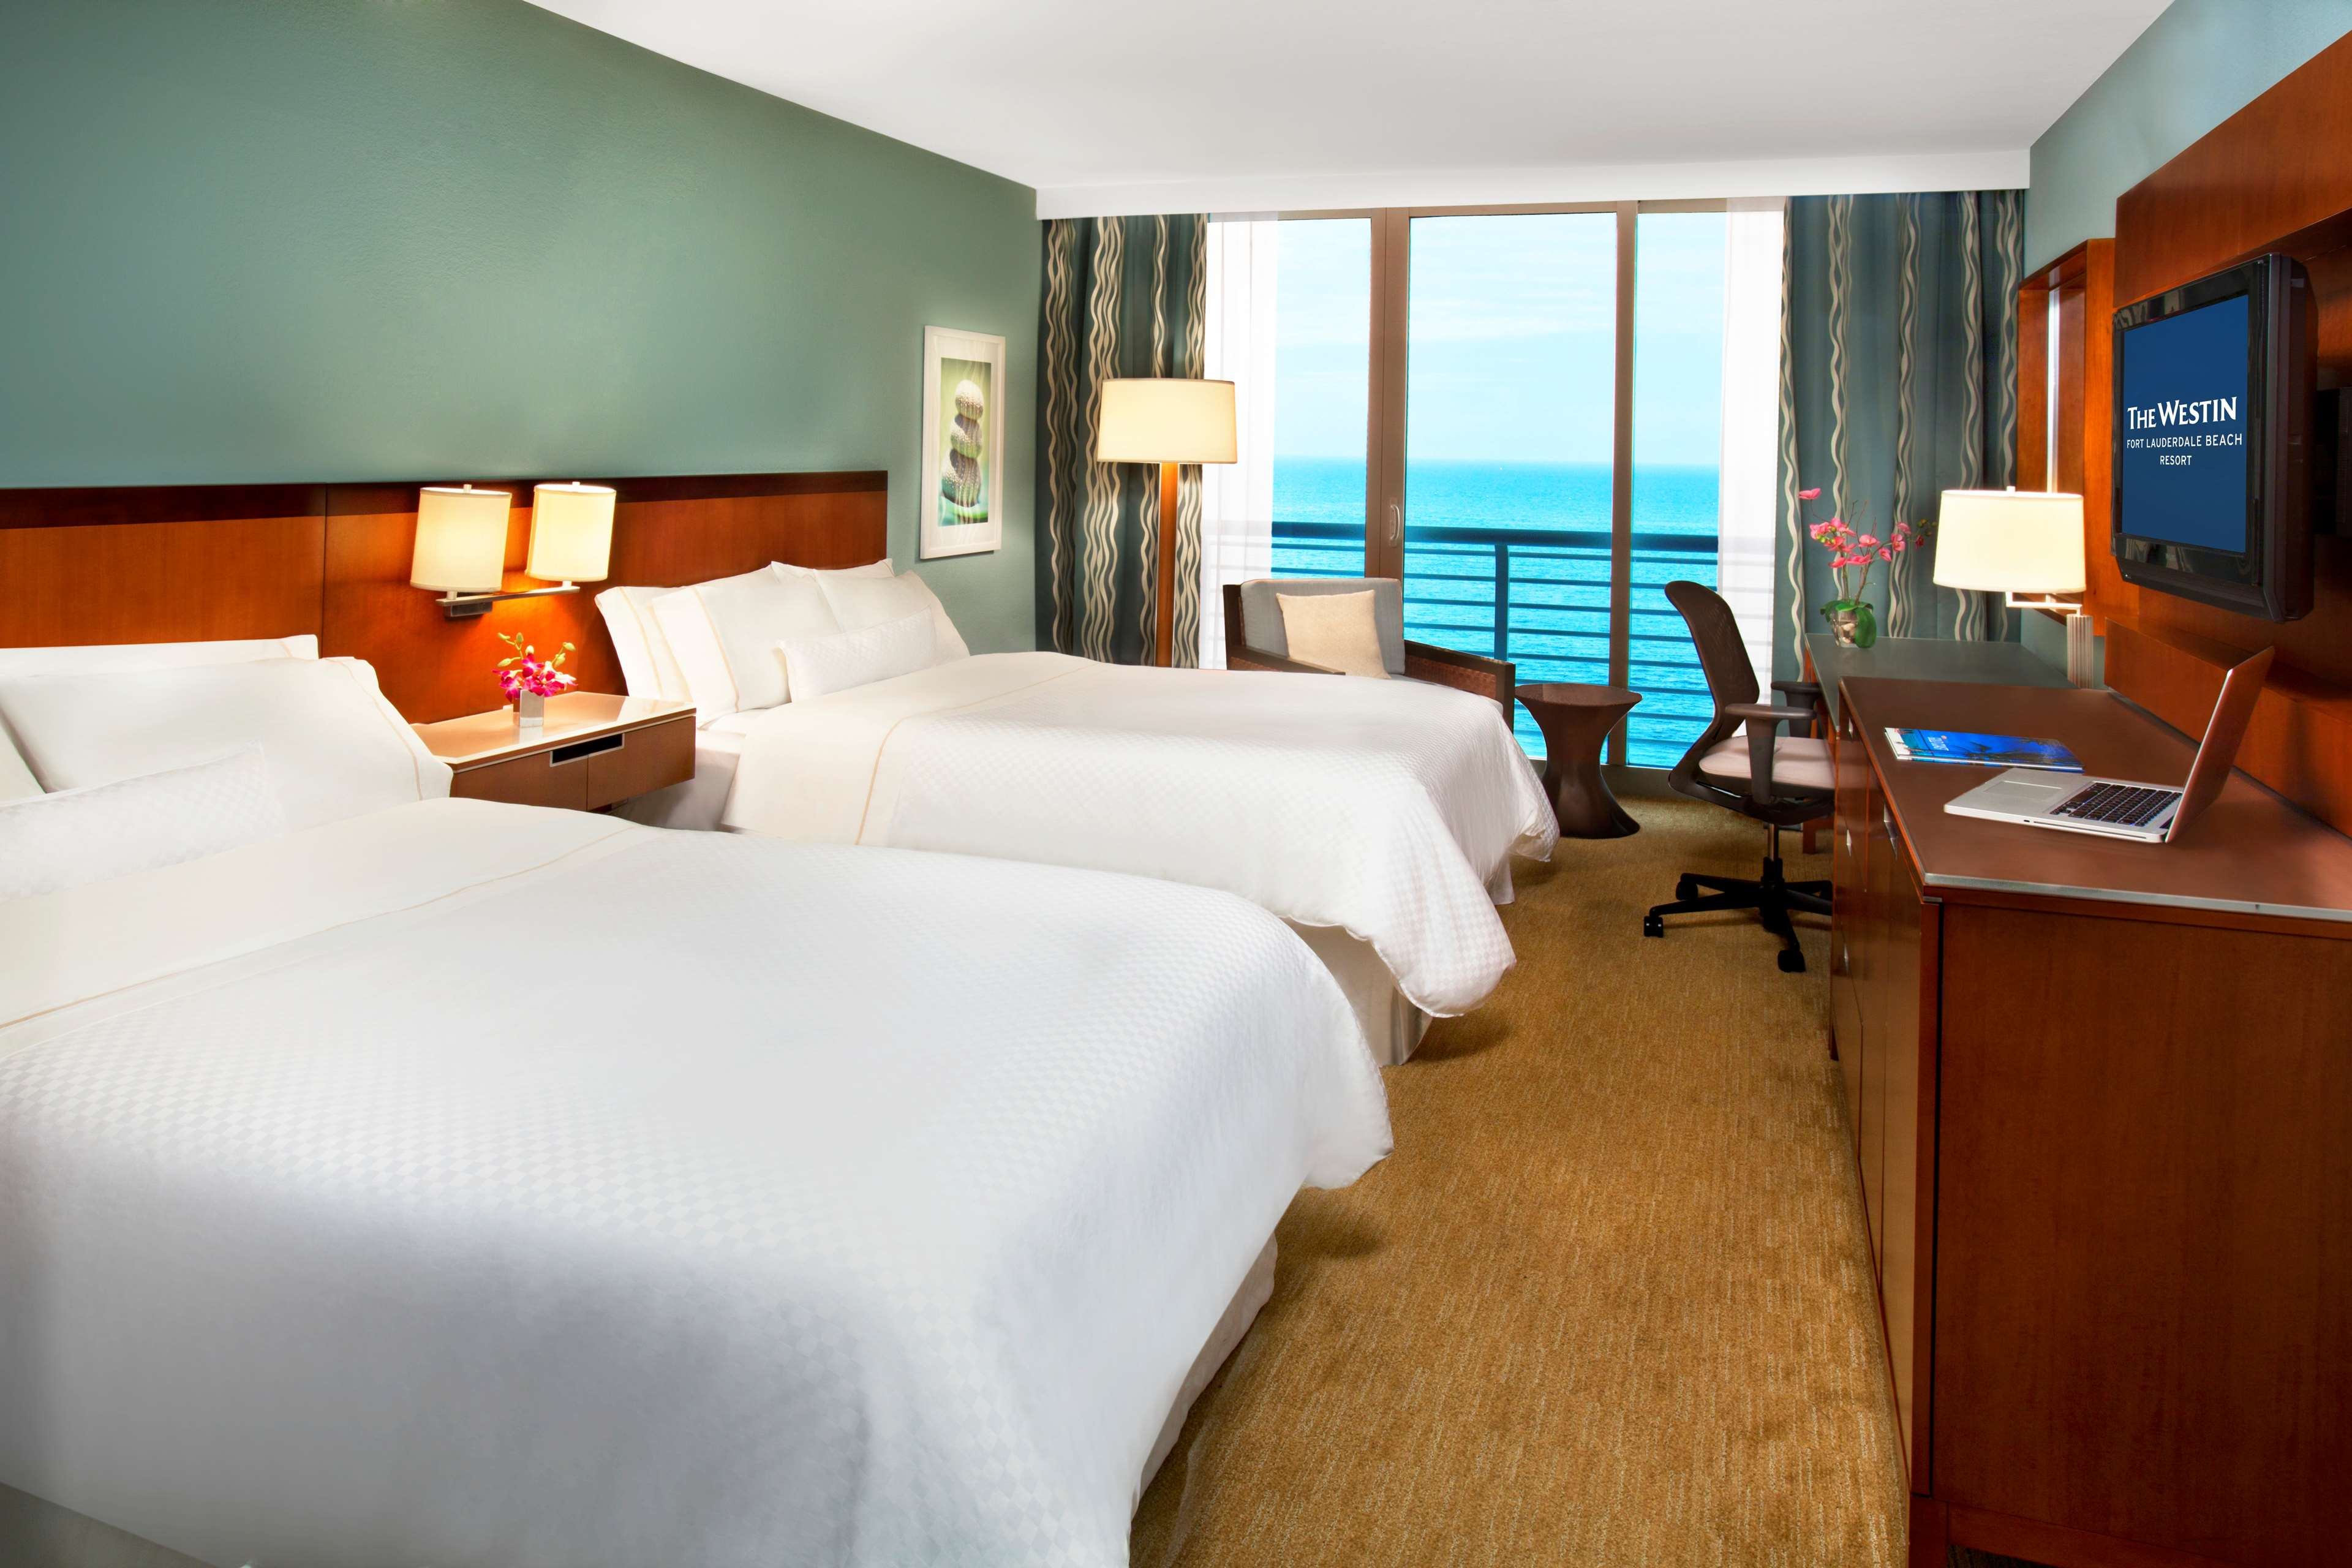 The Westin Fort Lauderdale Beach Resort image 31